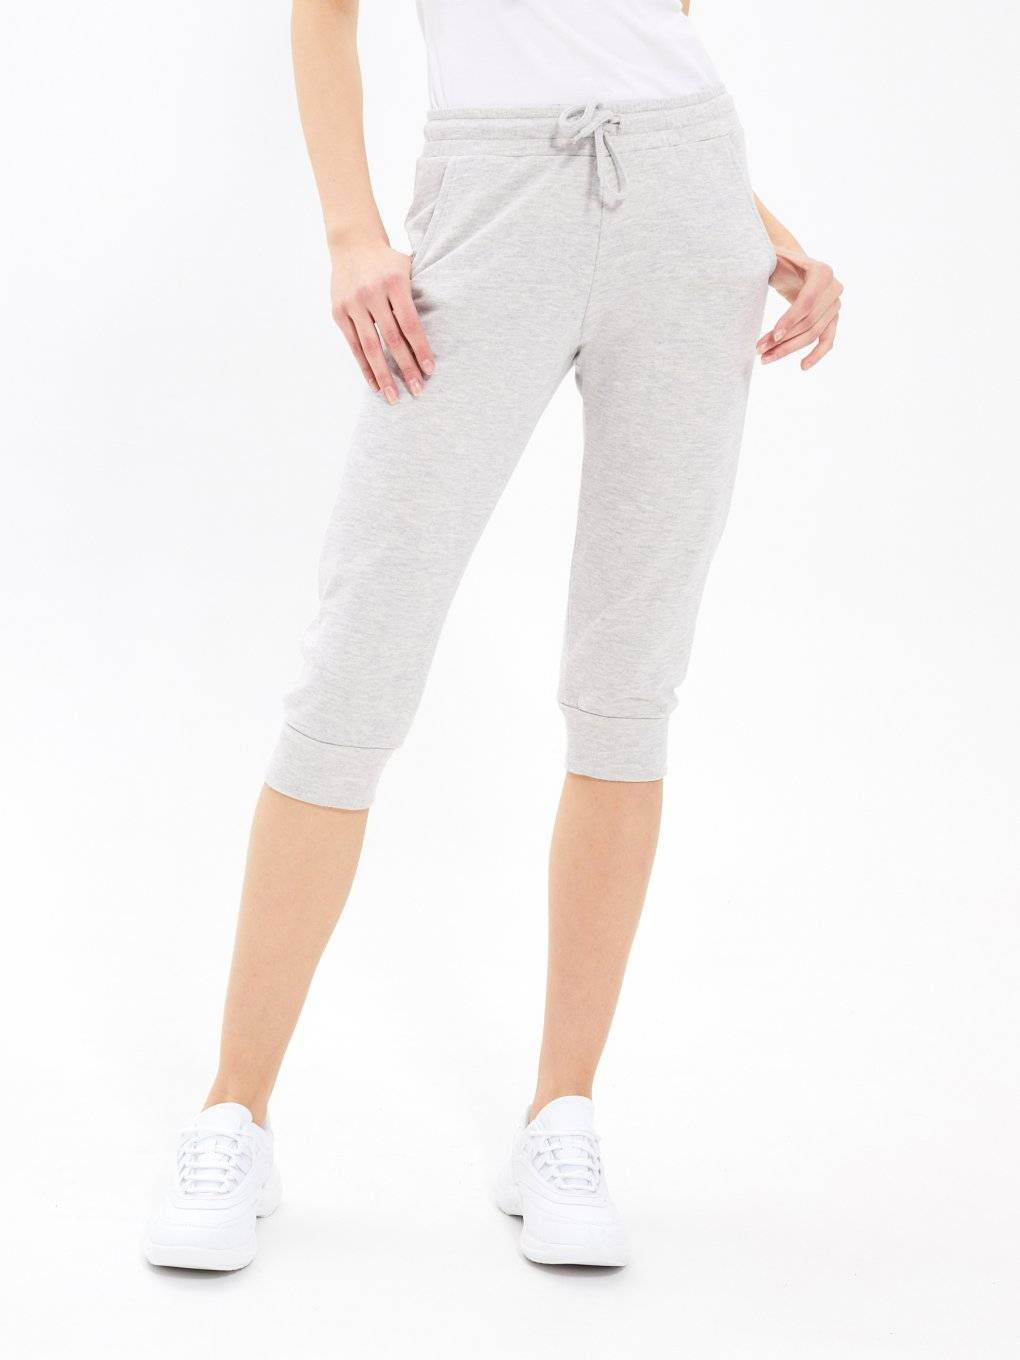 Basic 3/4-leg sweatpants